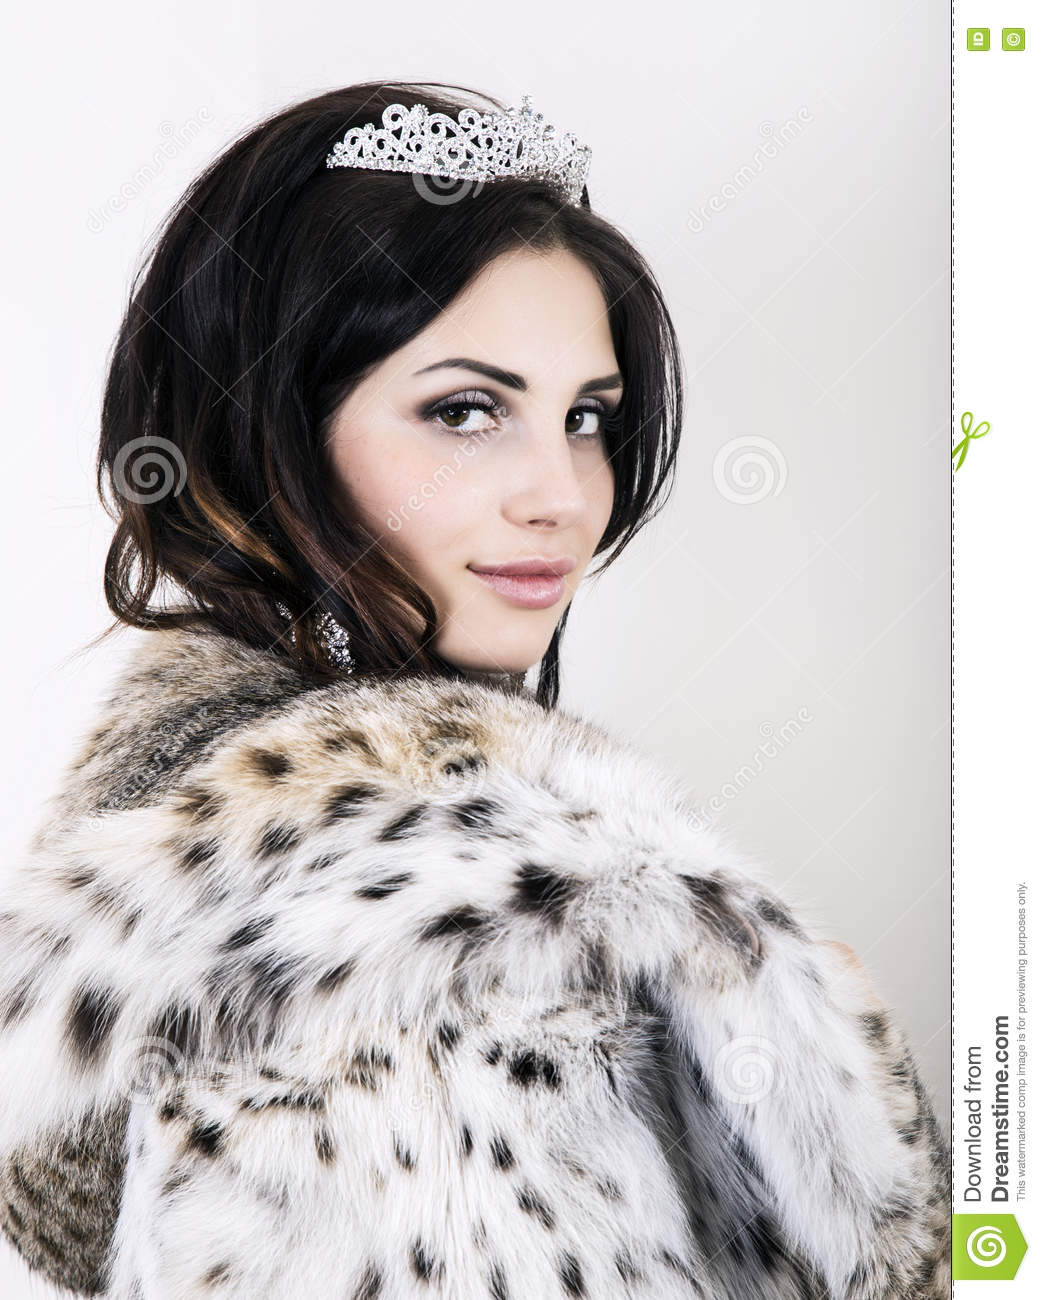 Beautiful Young Bride Wearing White Wedding Dress And Fur